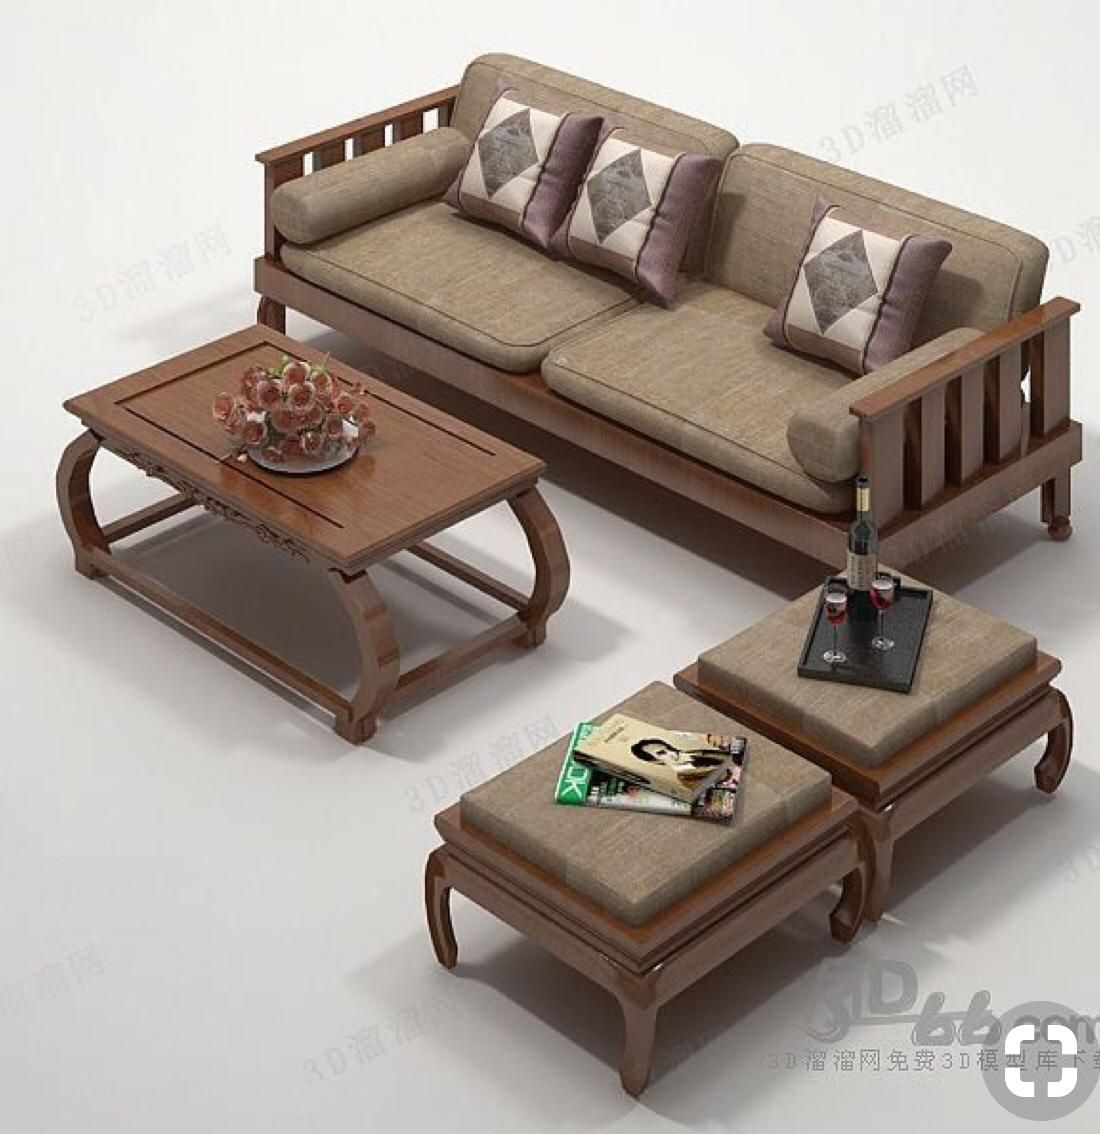 Pin By Mohammed Hussein On لاجووون Wooden Sofa Designs Wooden Sofa Set Designs Sofa Set Designs